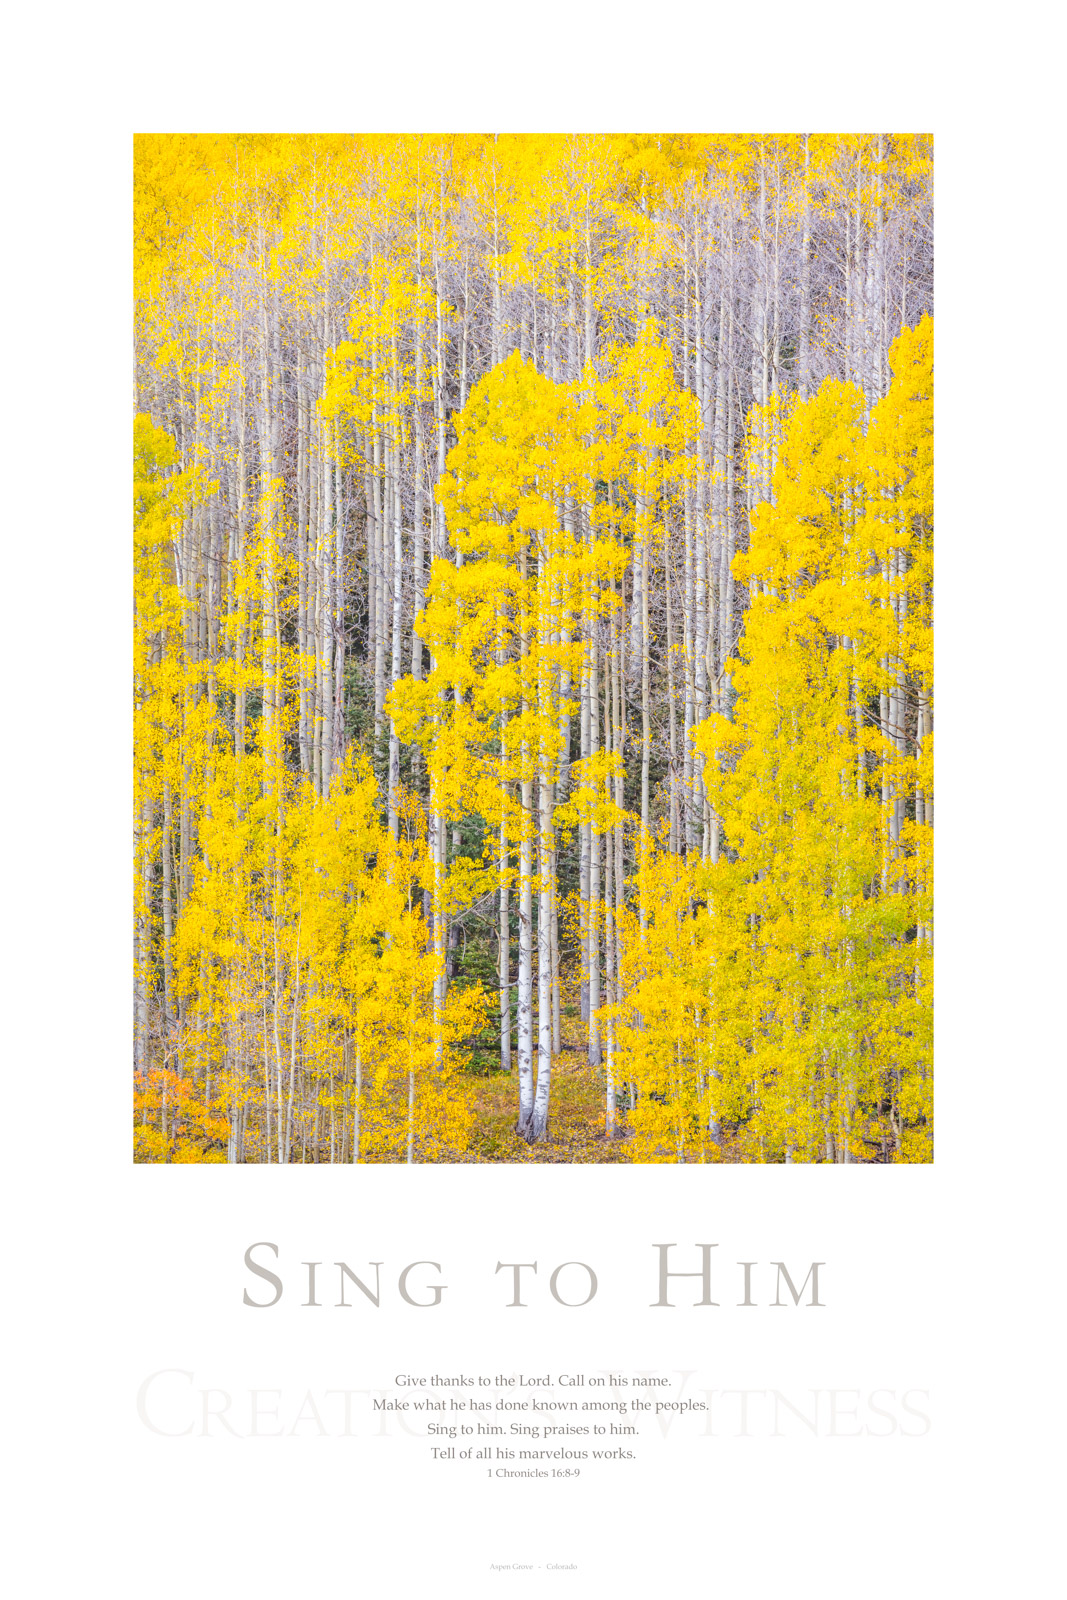 Give thanks to the Lord. Call on his name.     Make what he has done known among the peoples. Sing to him. Sing praises to him...